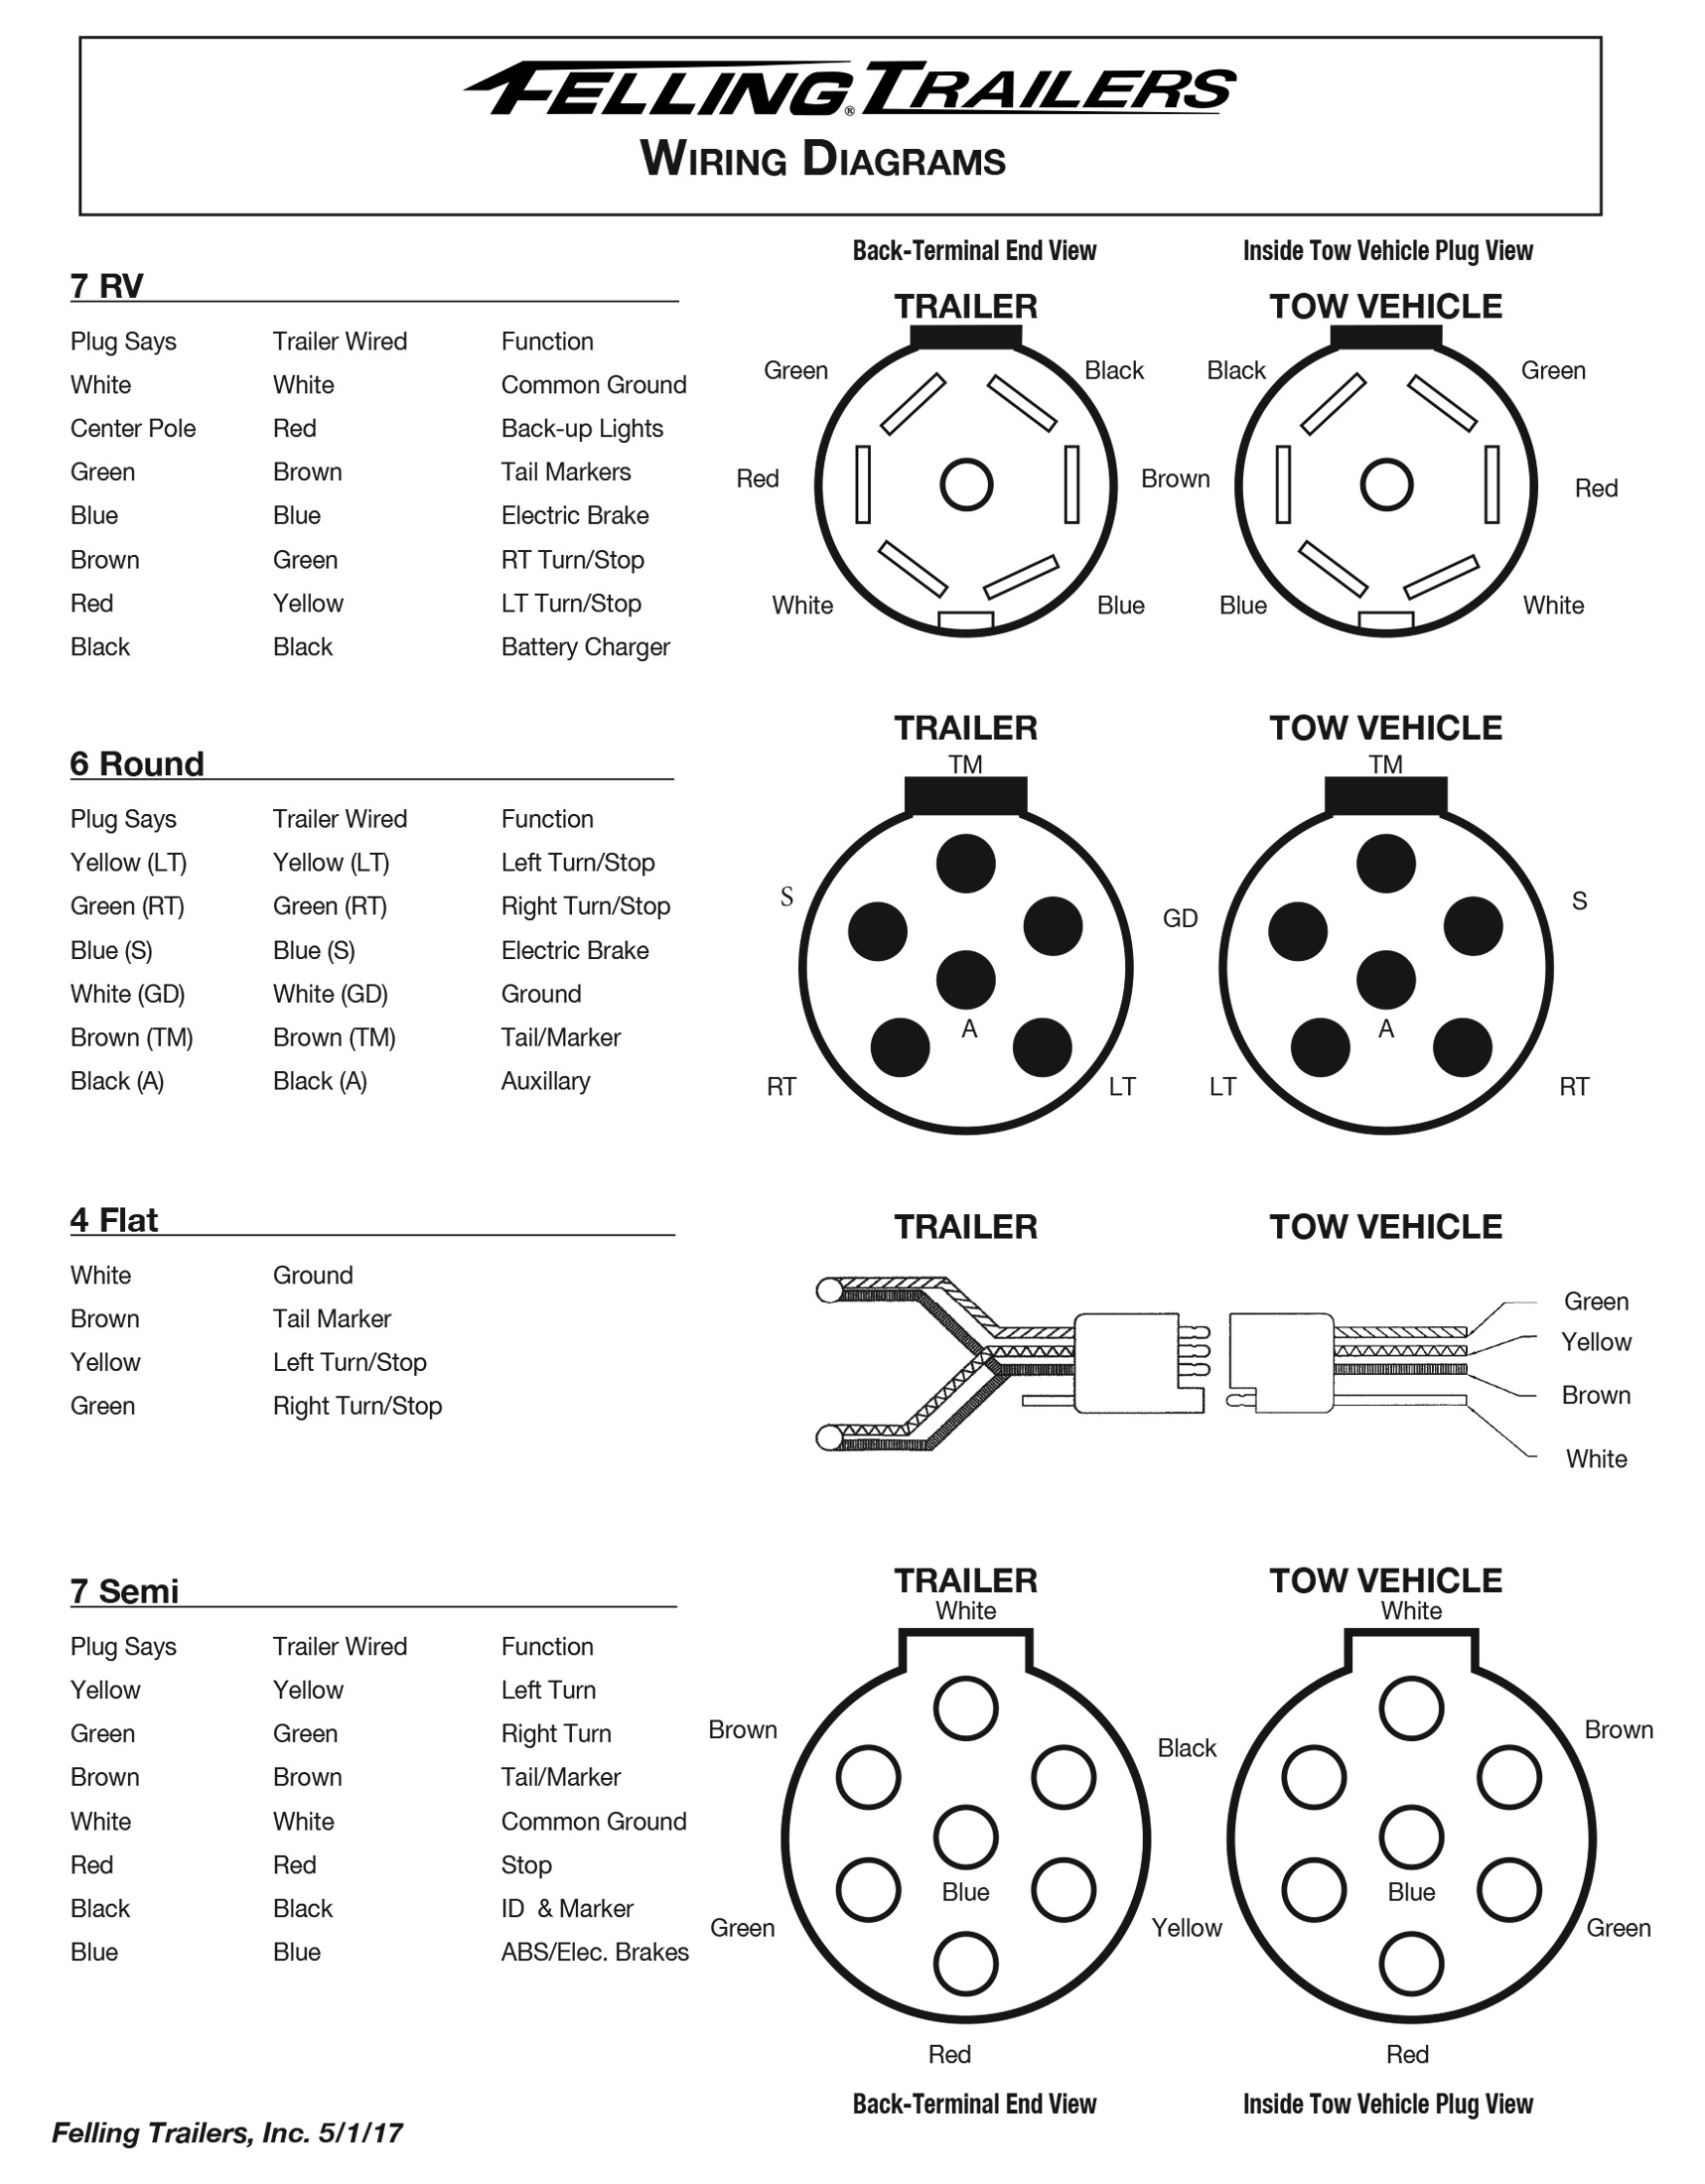 Service- Felling Trailers Wiring Diagrams, Wheel Toque - Trailer Wiring Diagram No White Wire